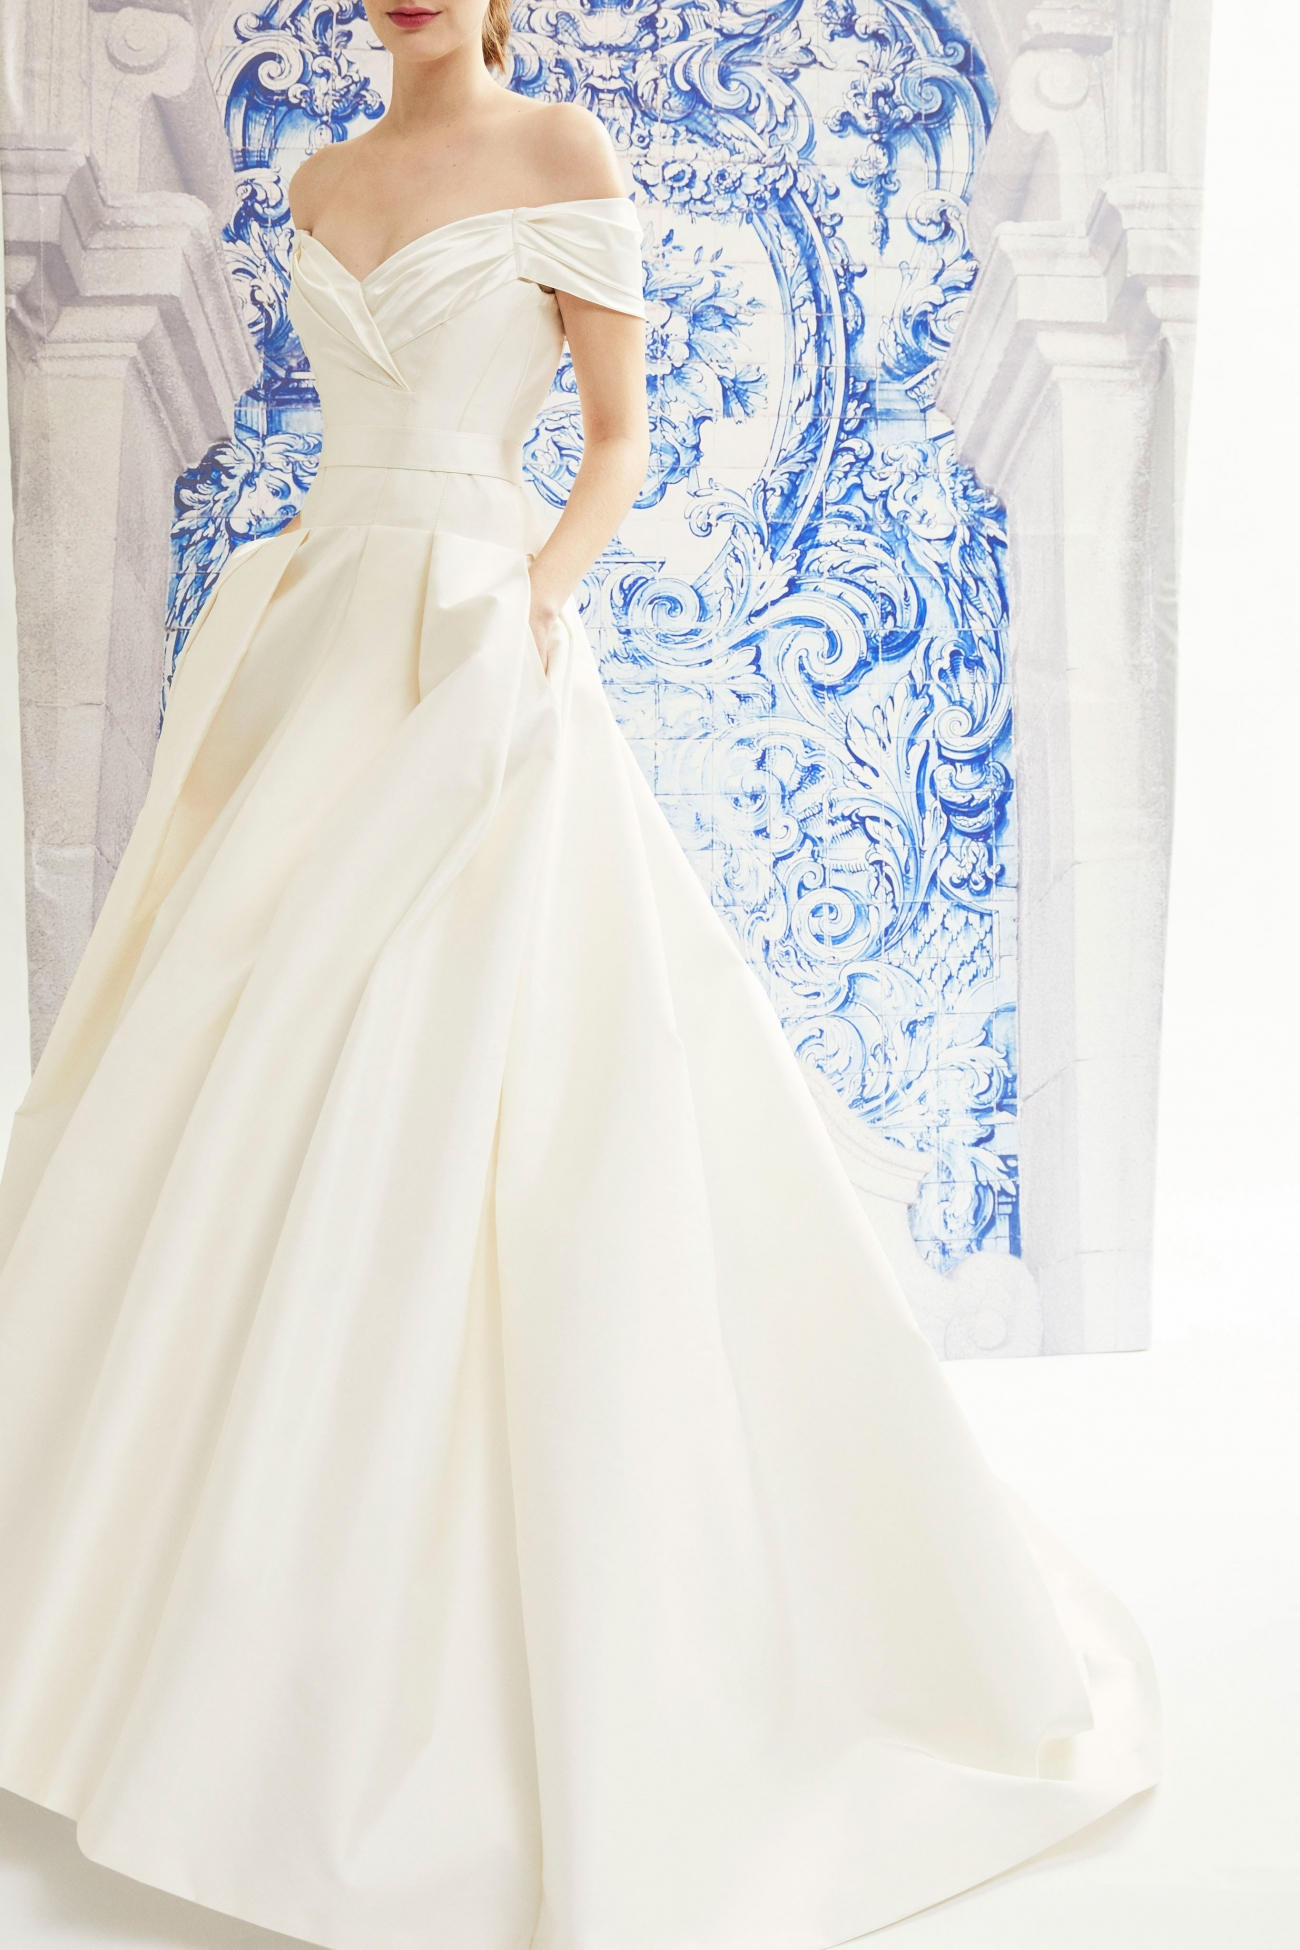 Carolina Herrera Bridal Fall 2019 Isabelle